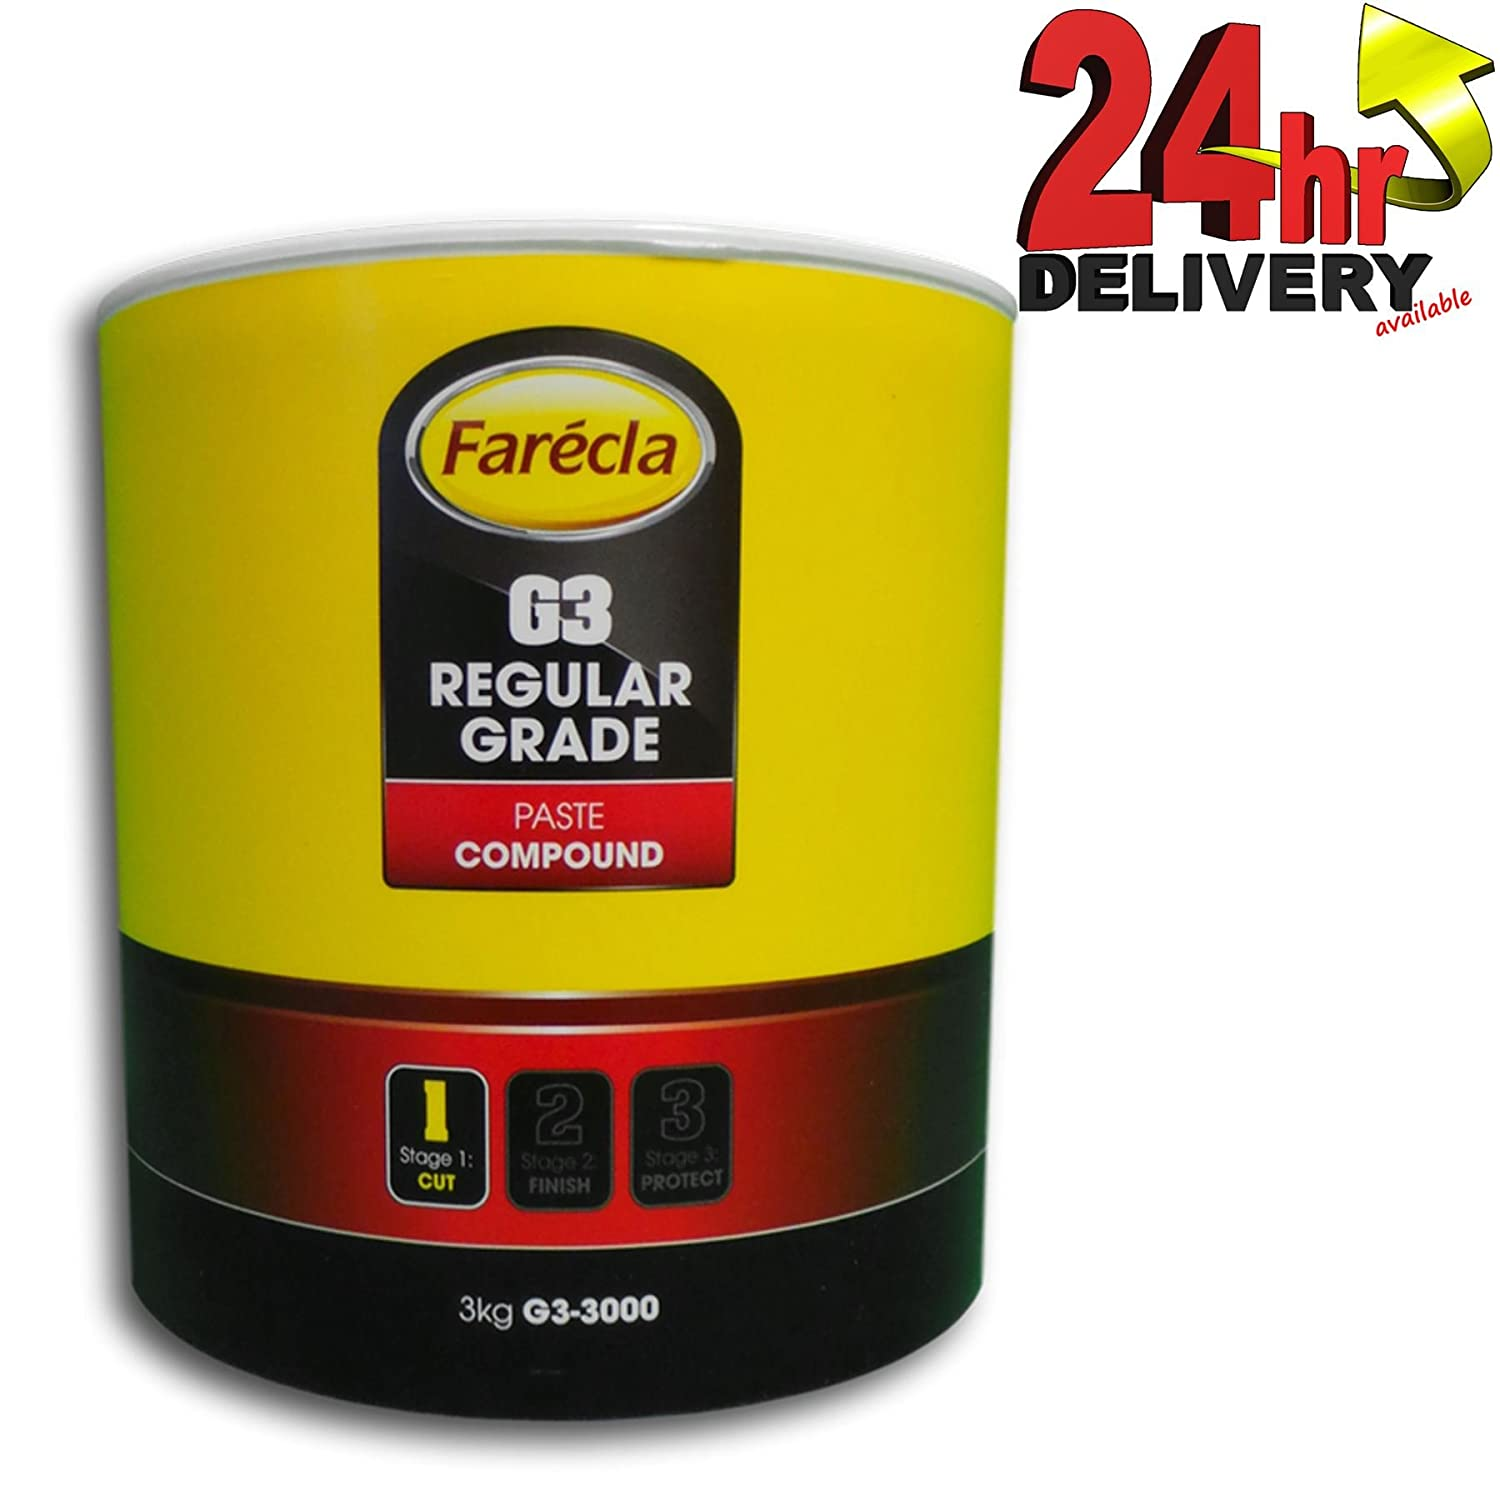 Farecla G3 Rubbing Compound Regular Cutting Paste 3kg 3000g Tub Car Polishing Scratch Swirl Remover Colour Restorer Permanent Finish - Contains no fillers so scratch marks will not reappear